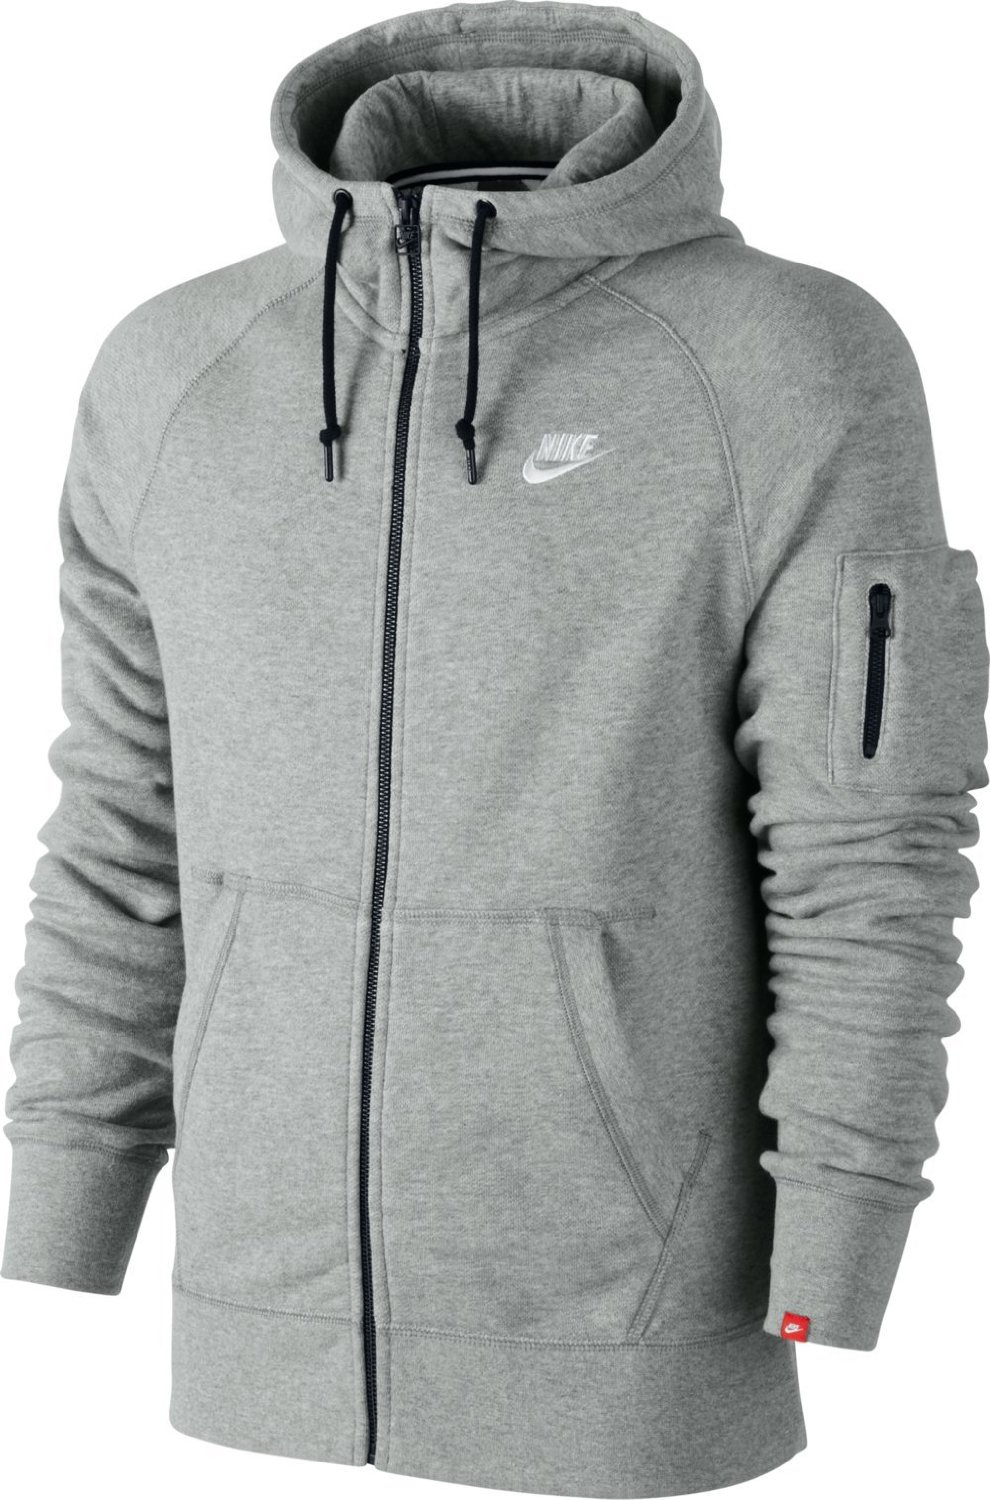 nike herren jacke aw77 fleece hoody sport. Black Bedroom Furniture Sets. Home Design Ideas